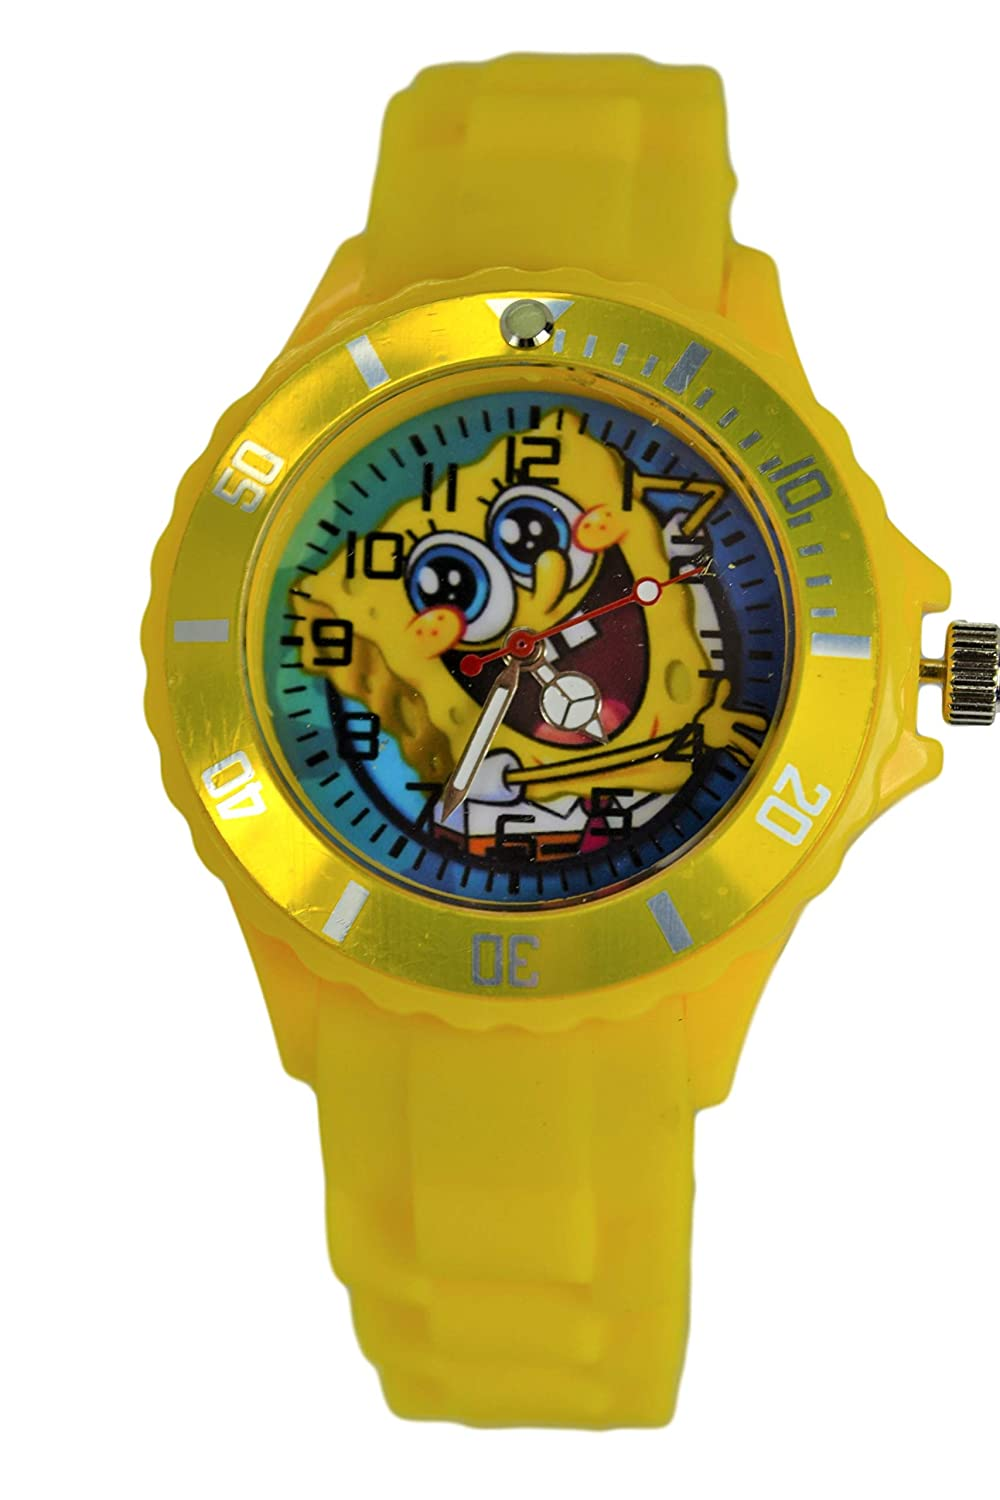 Amazon.com: SpongeBob SquarePants Wrist Watch for Children Boys Girls Analog Watch Display.: Watches